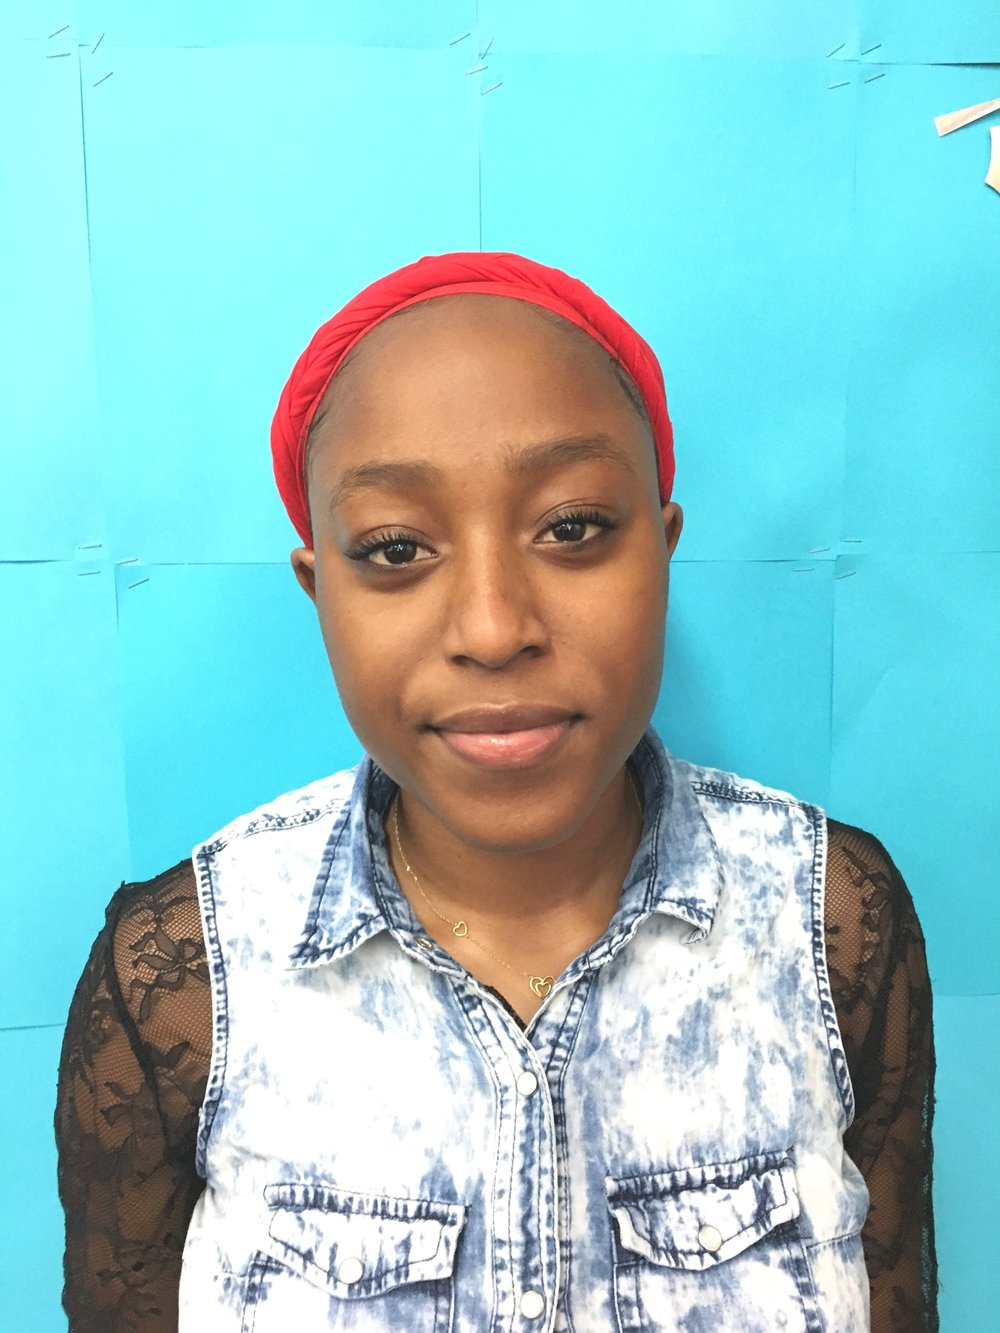 Edith O. - Congratulations Edith Osazee! Edith joined Youth Enrichment Services in January 2019 with the goal of attaining her GED. Although Edith is originally from Nigeria and moved to the United States this past year, her drive and motivation helped her overcome all the challenges that got in her way. On May 8th, 2019 Edith successfully passed the final section of her GED exam! Her future plans include attending Chabot College to work on her AA degree and eventually transfer to another college. You're awesome Edith! Keep it up!